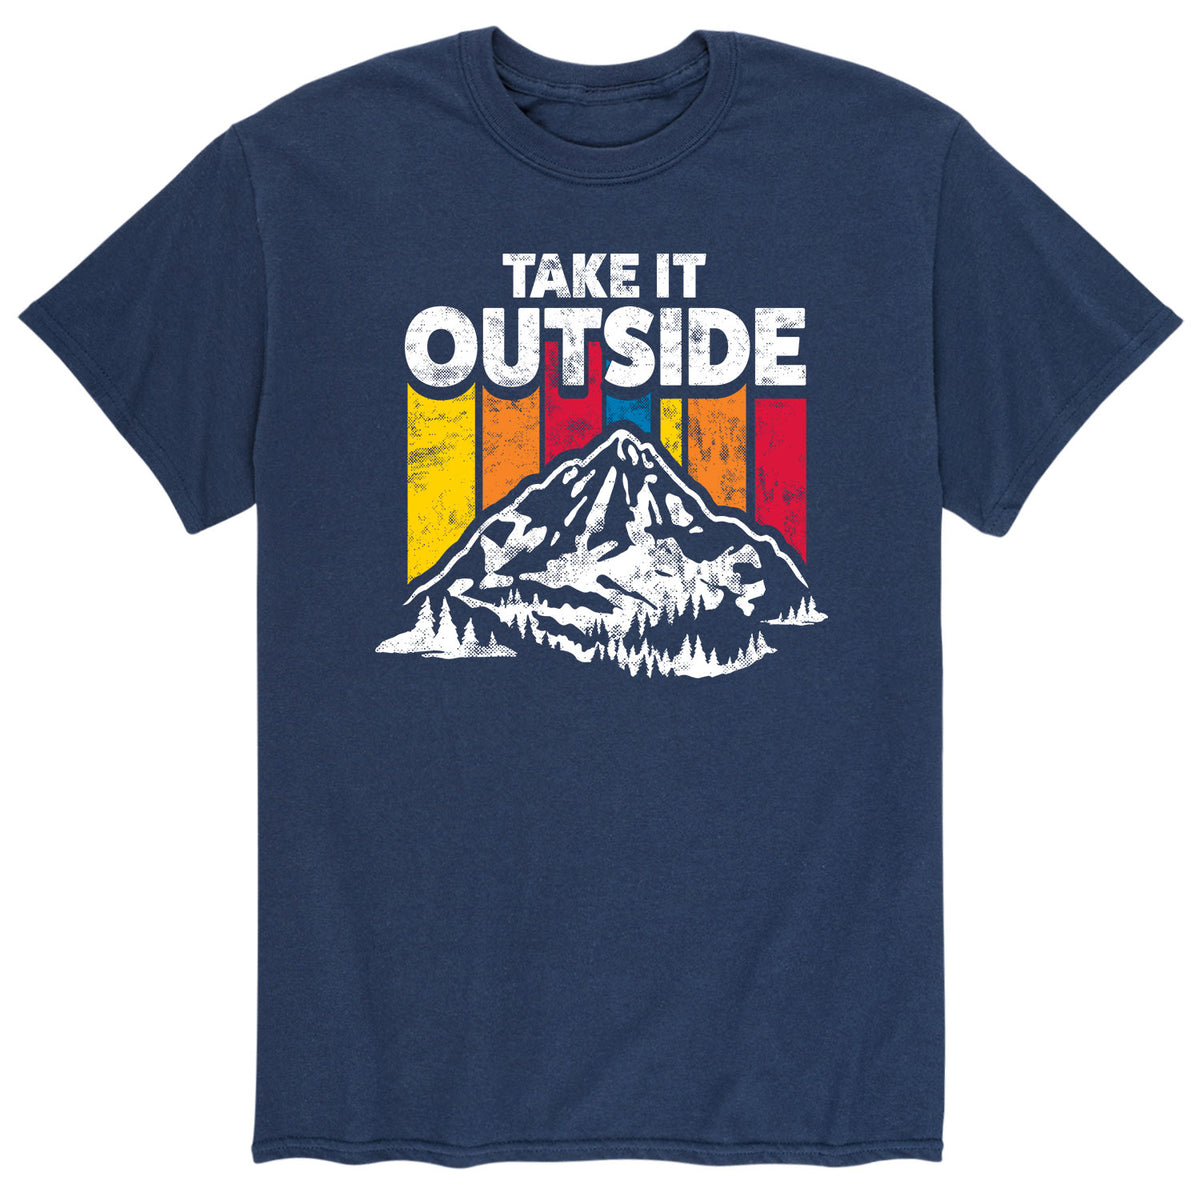 Take It Outside - Men 's Short Sleeve T-Shirt